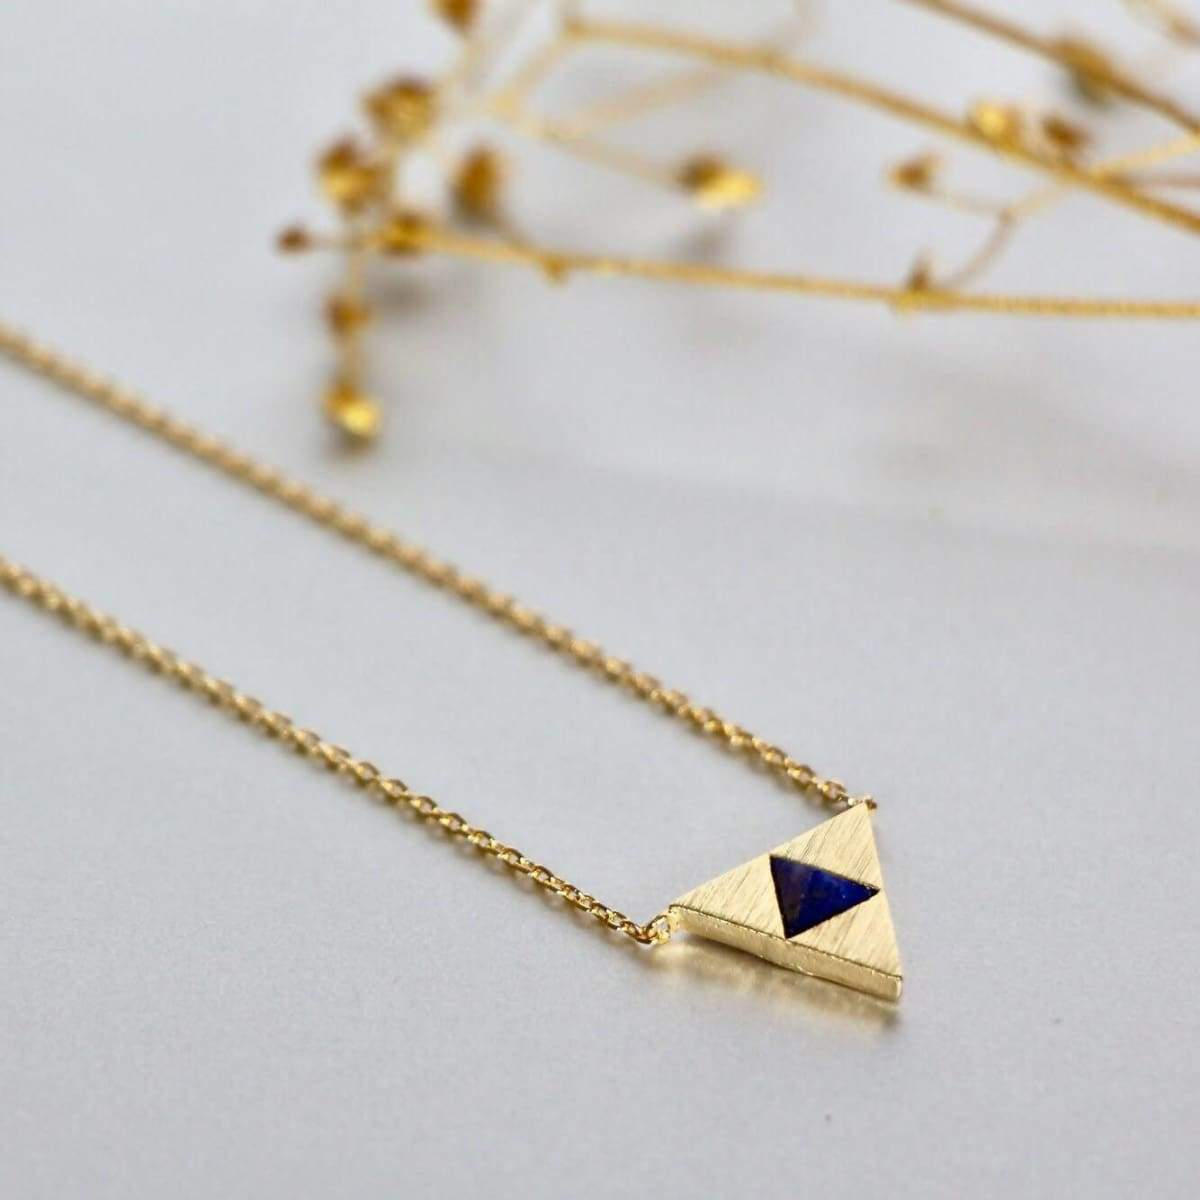 Lapis Lazuli Marble Stone Ring And Necklace Set Egyptian Jewelry Gold Geometrical Dipped Gifts For Her SR55/SN113